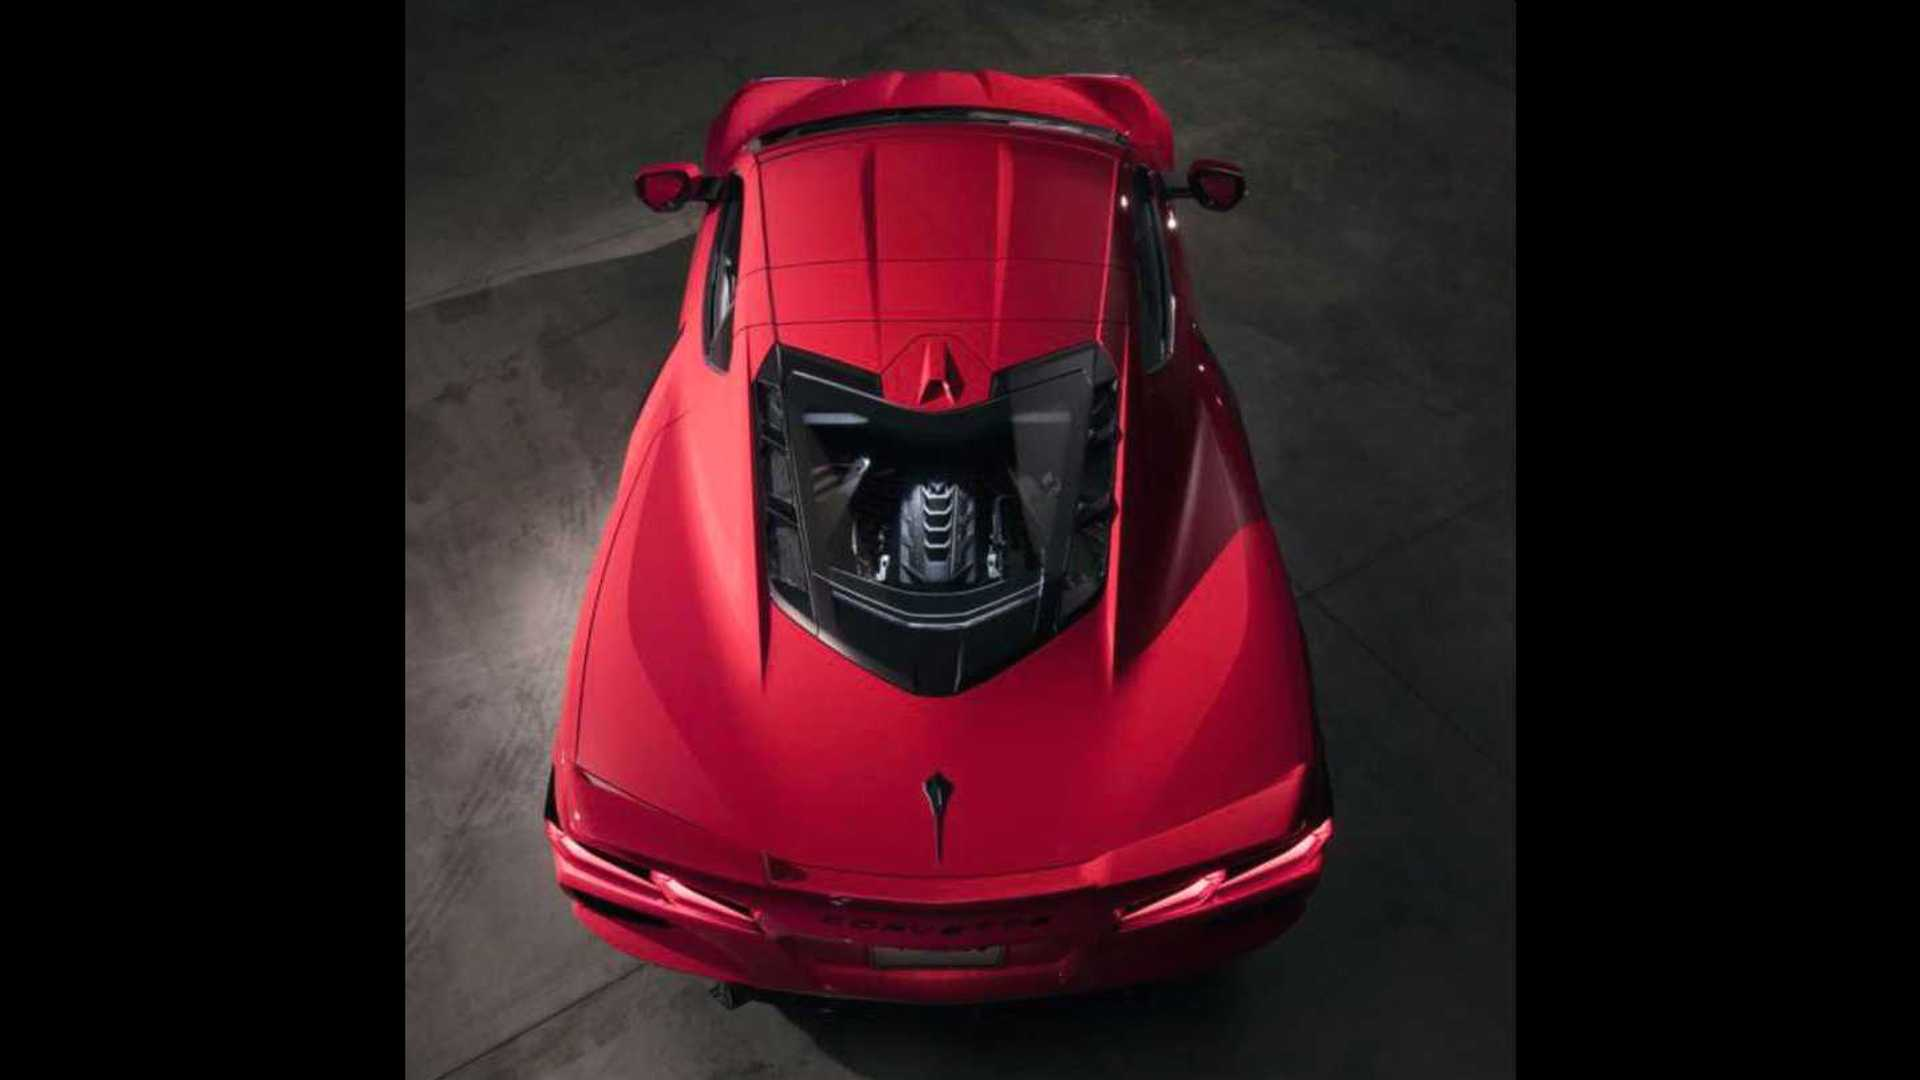 2020 Chevrolet Corvette C8 Roof